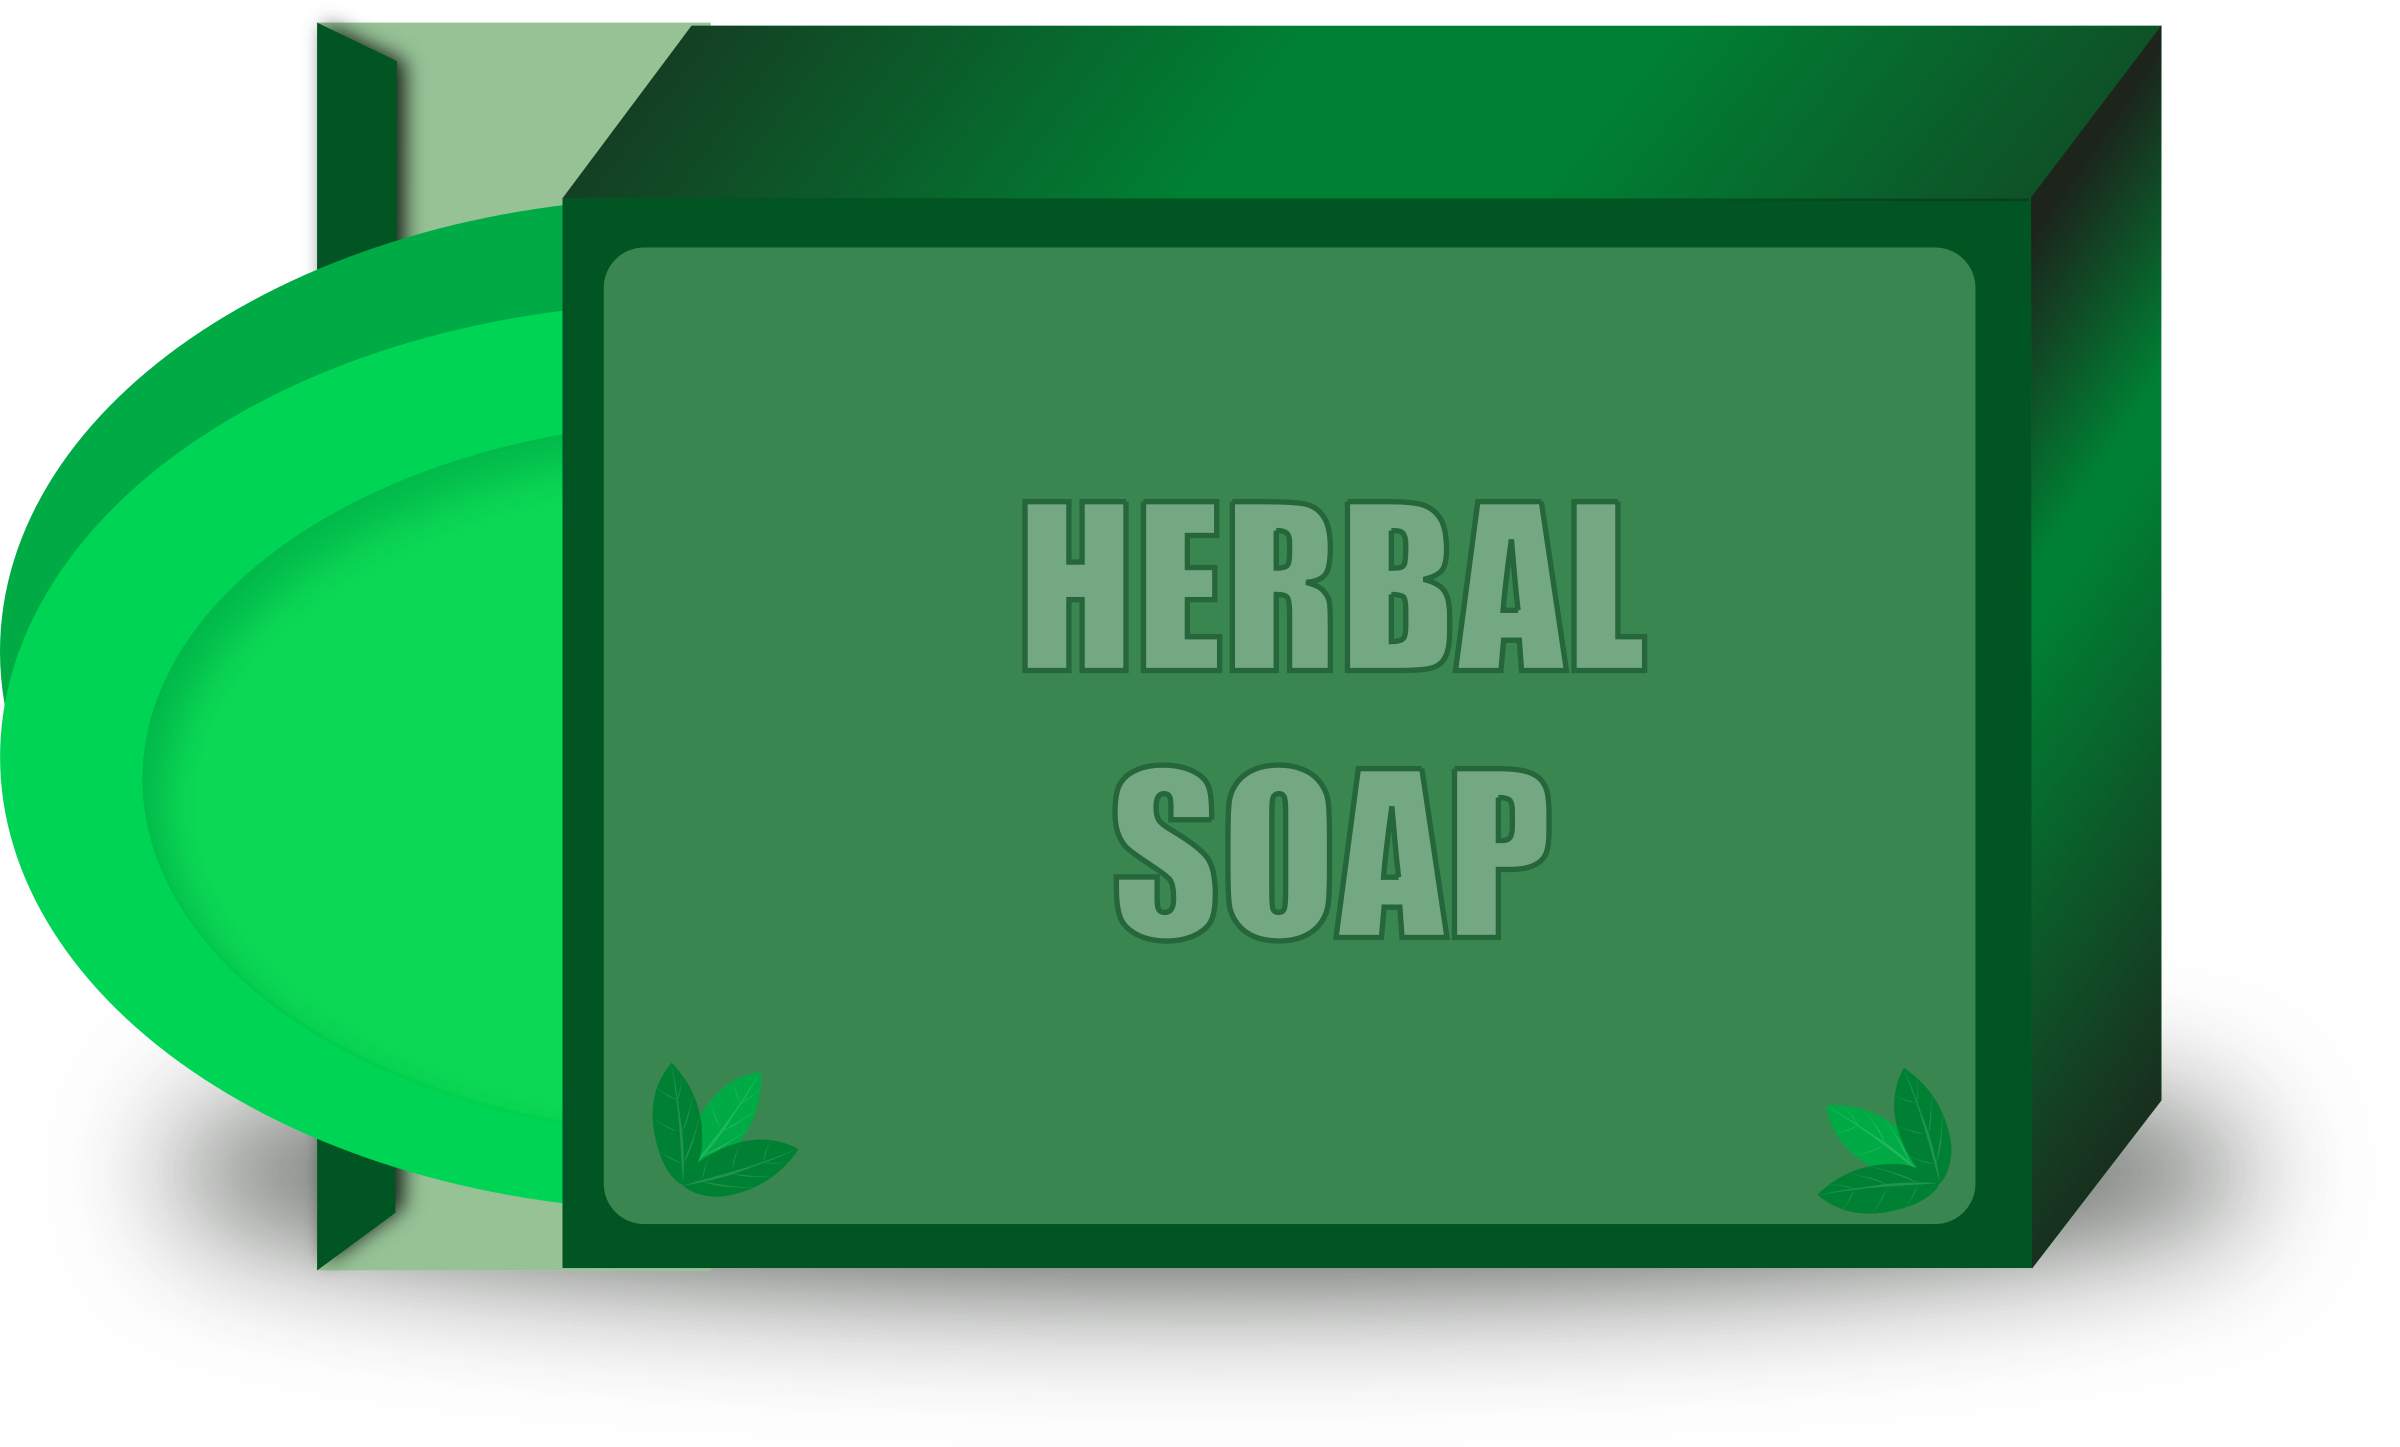 Herbal Soap by gsagri04